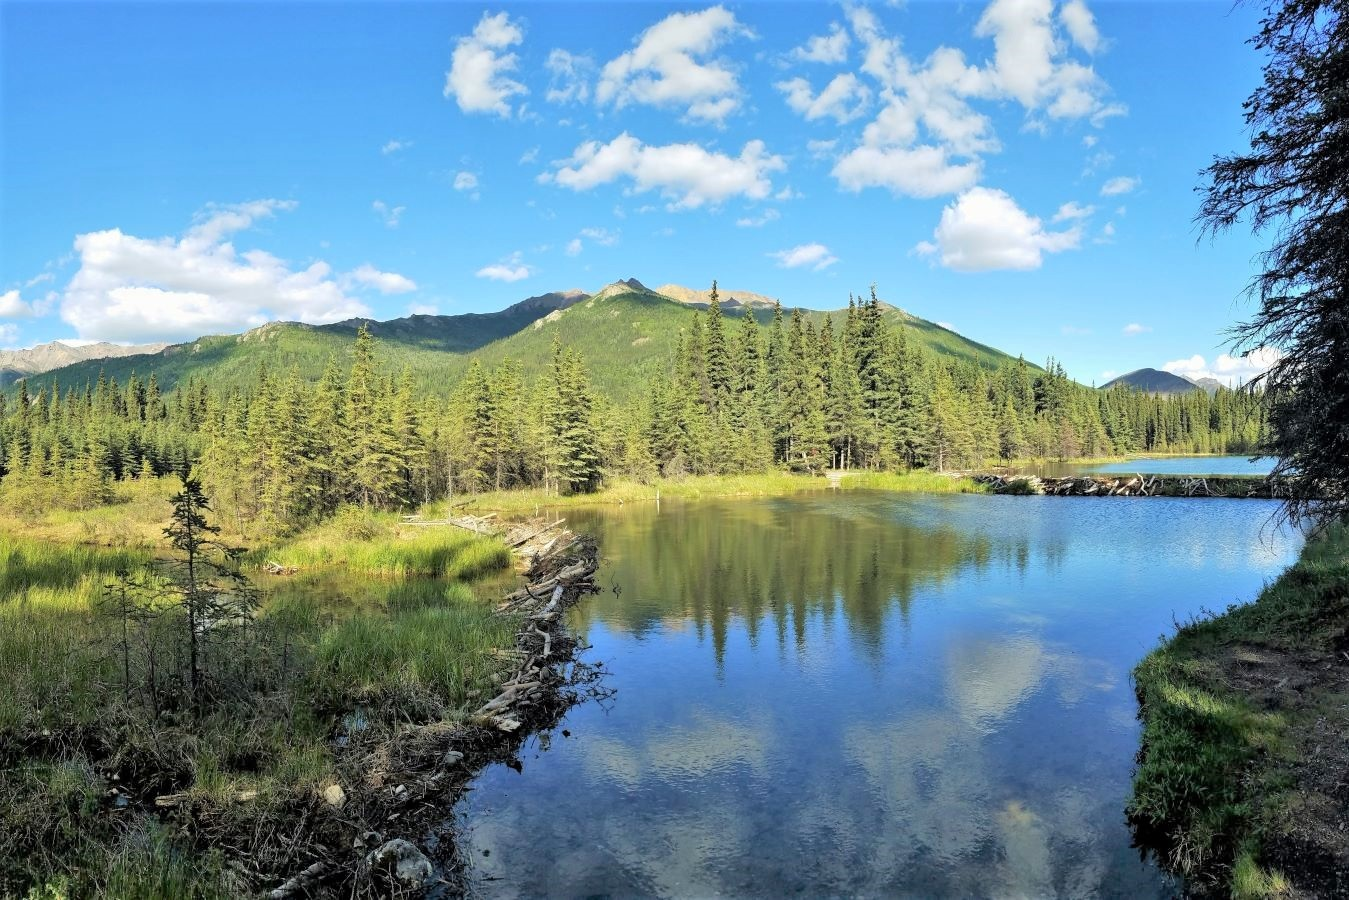 One of the best things to do in Denali is the Horseshoe Lake Trail, pictured with pine trees and clouds reflecting on the surface.